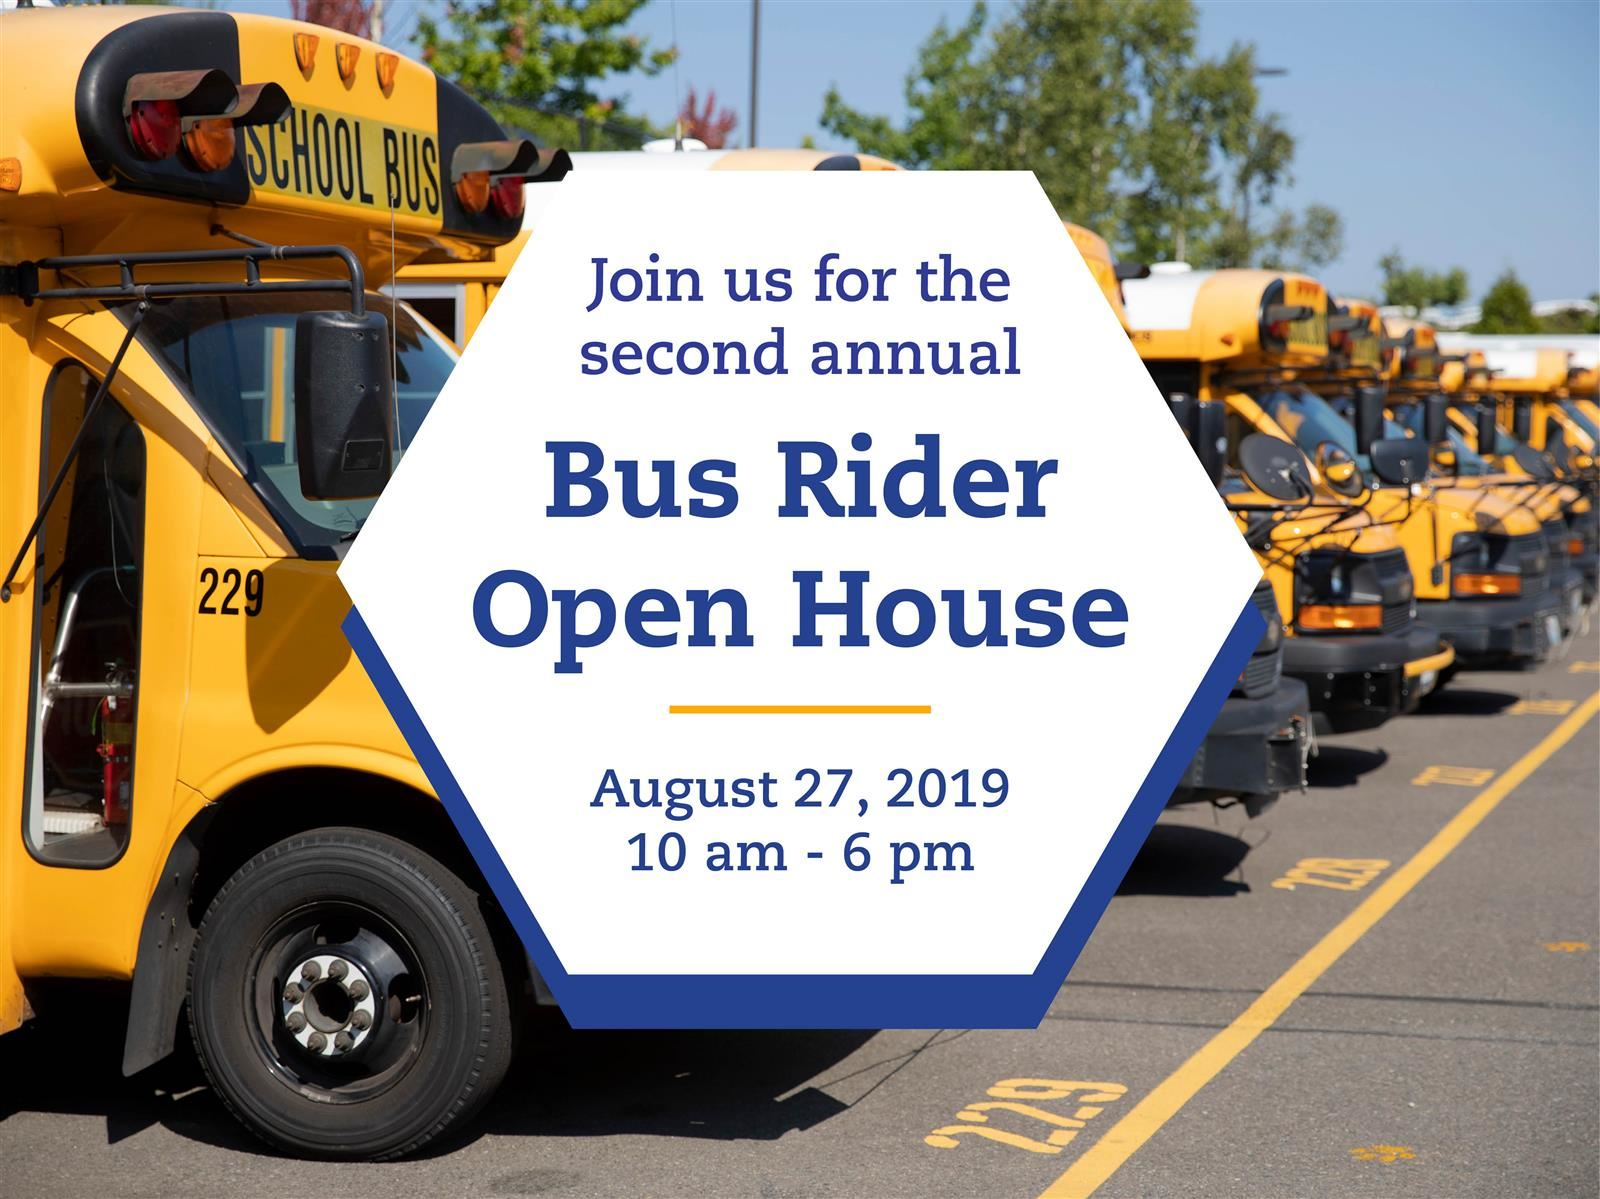 School Bus with date of August 27 for Bus Rider Open House